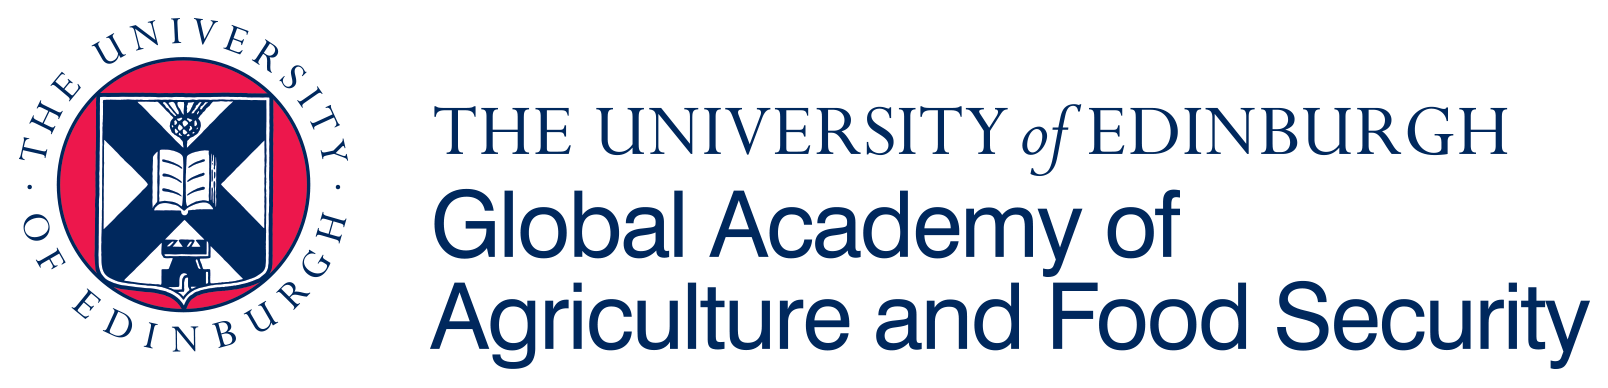 Global Academy of Agriculture and Food Security